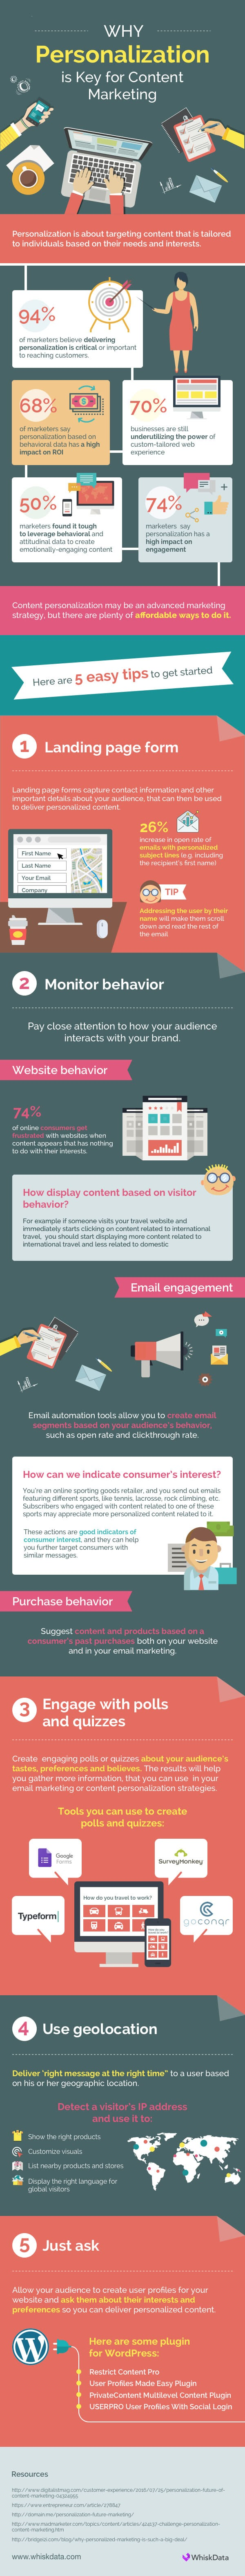 Why Personalization Is Key for Content Marketing [infographic]